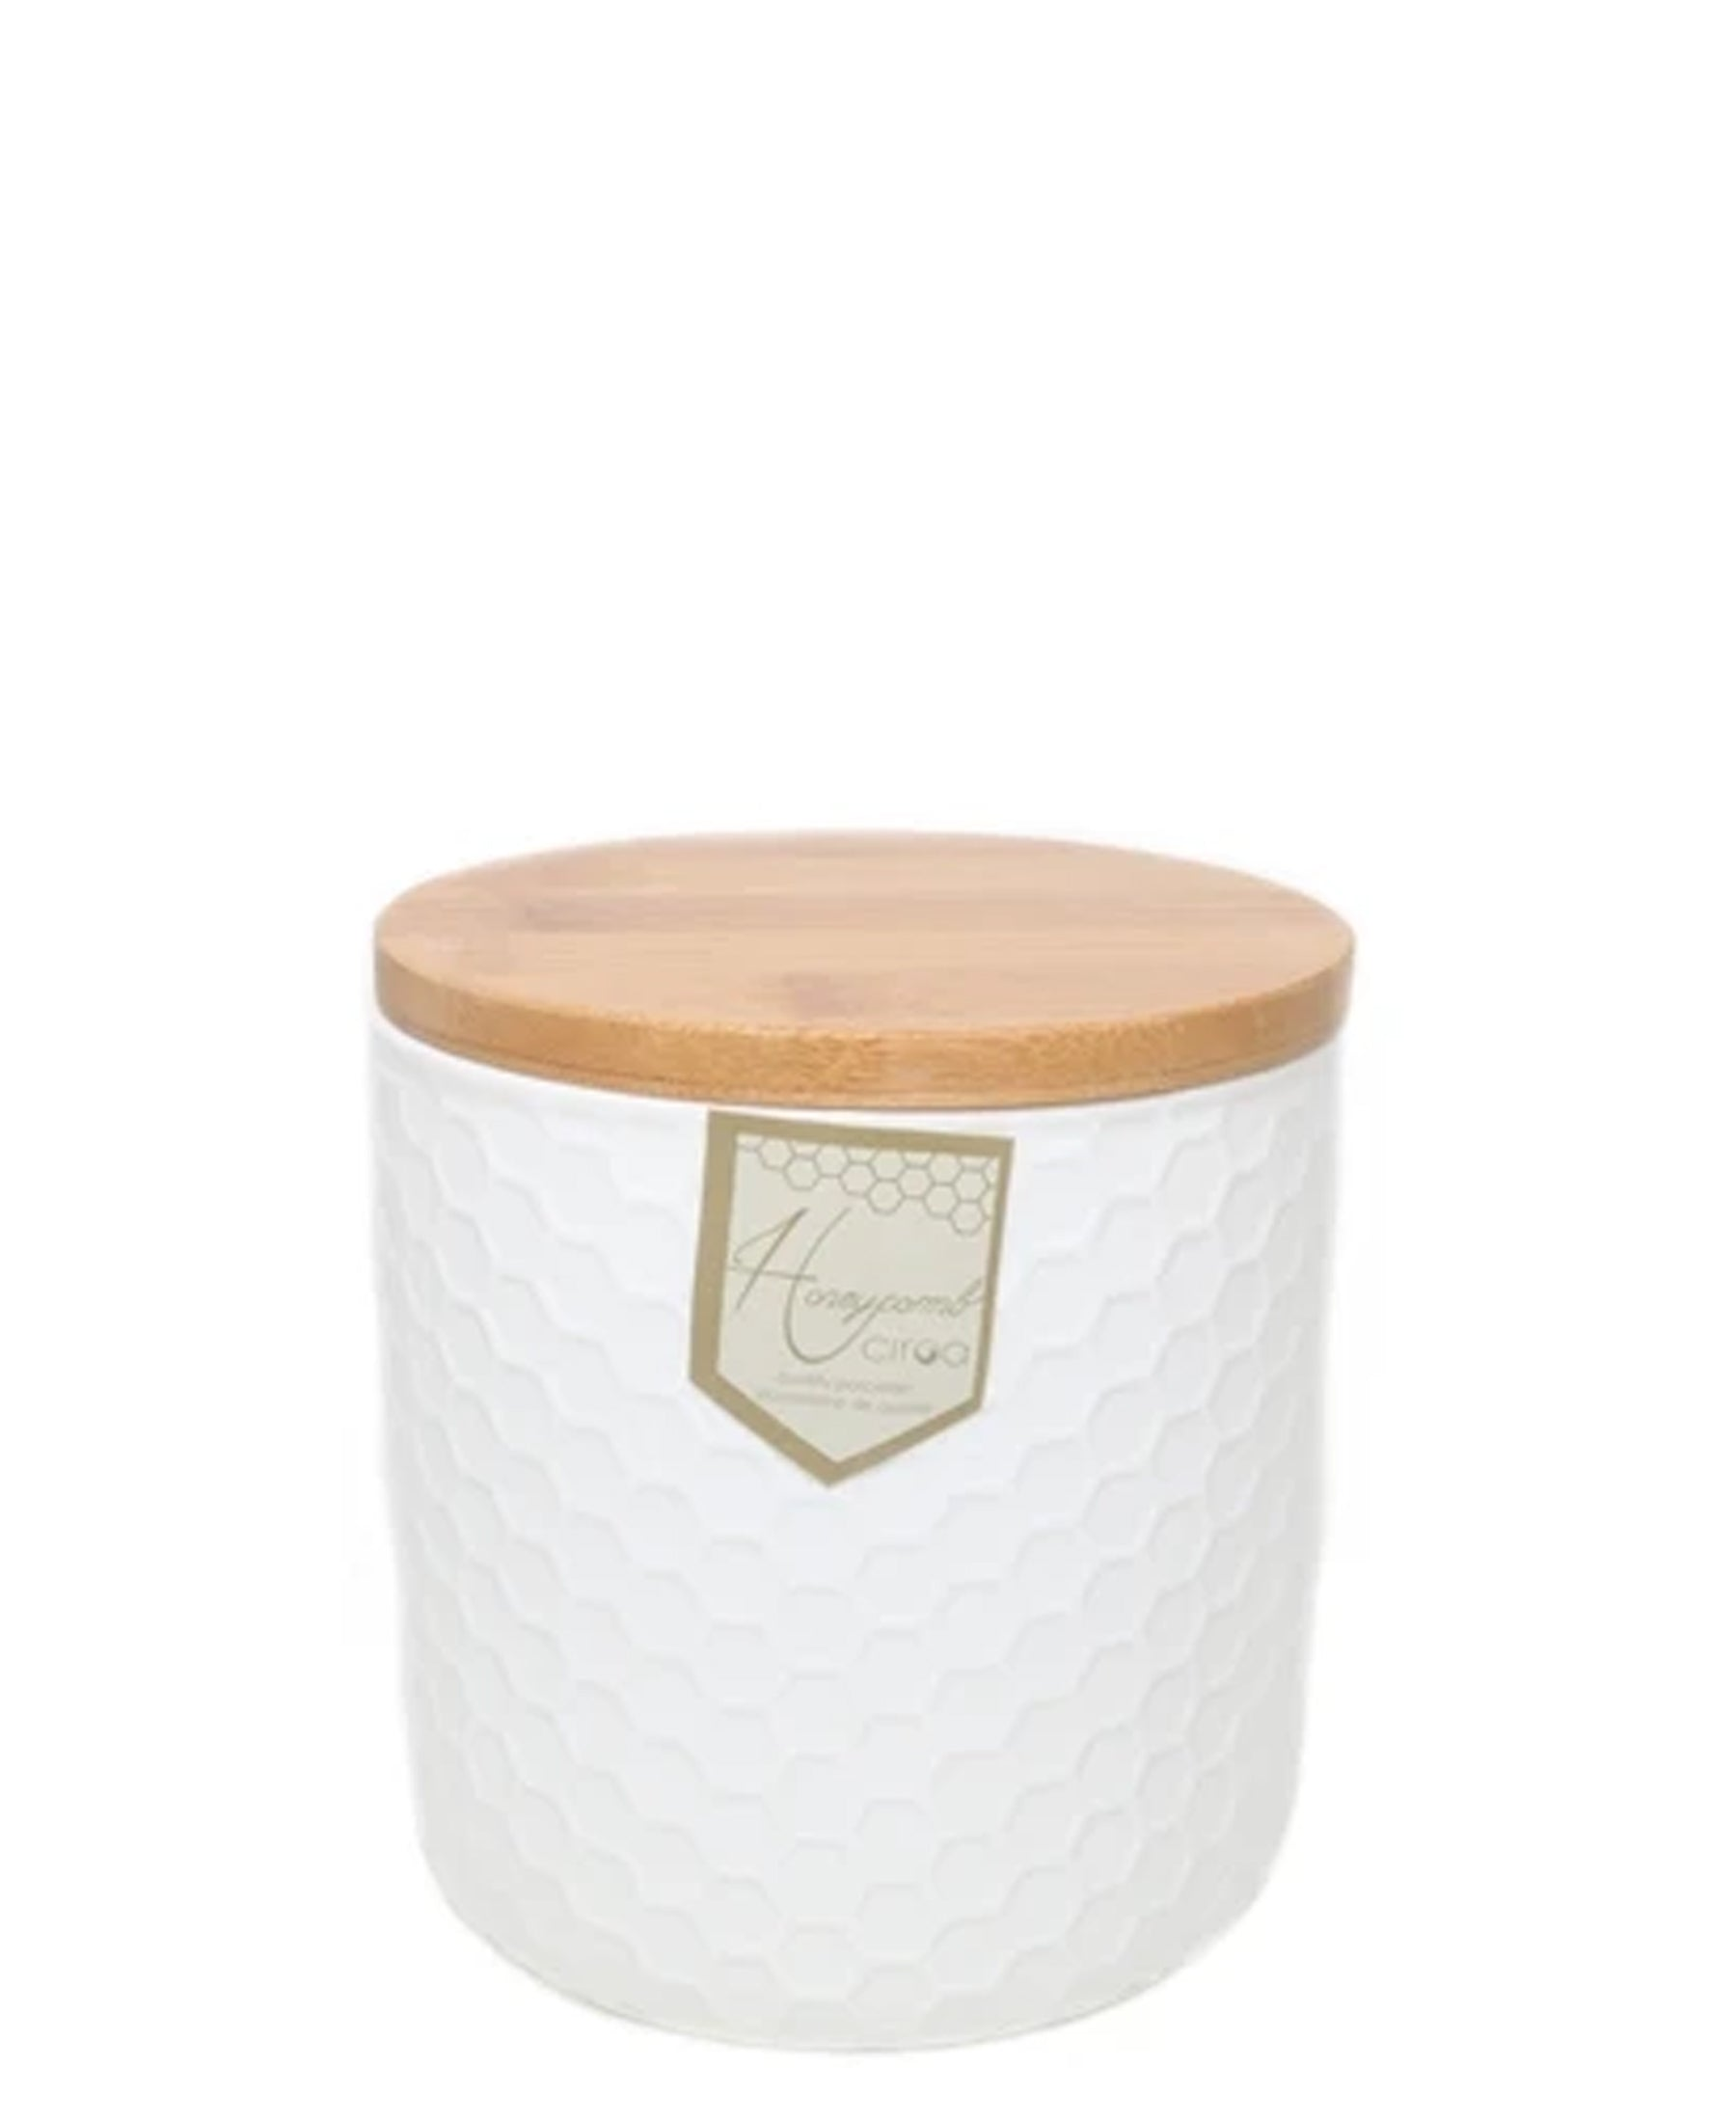 Ciroa Honeycomb Storage Jar Medium